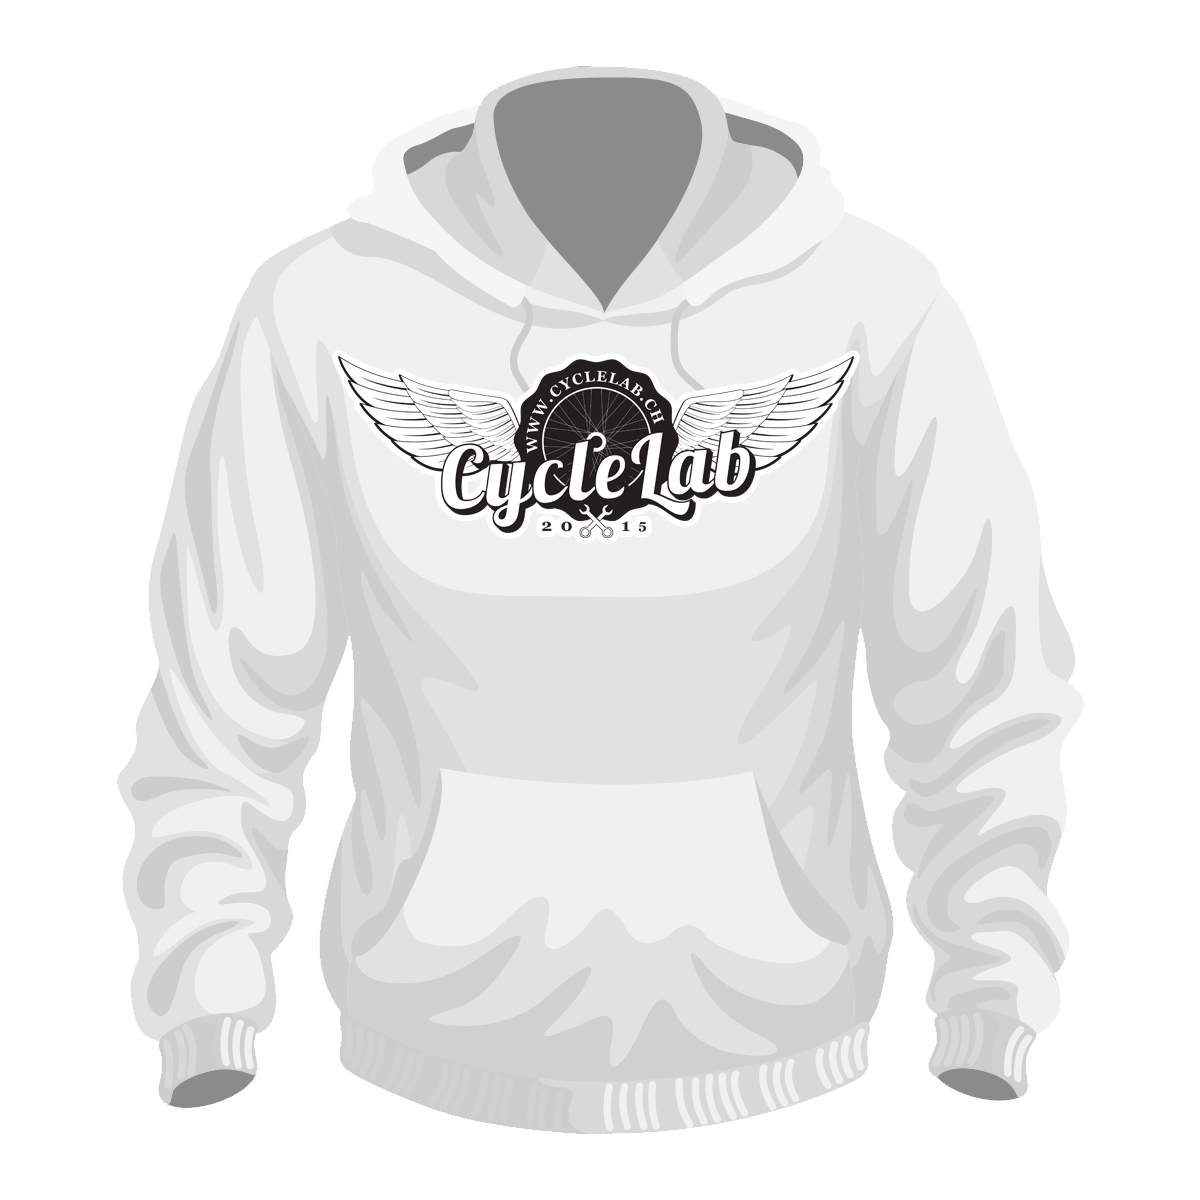 hoodies_white__1___1515321820_548